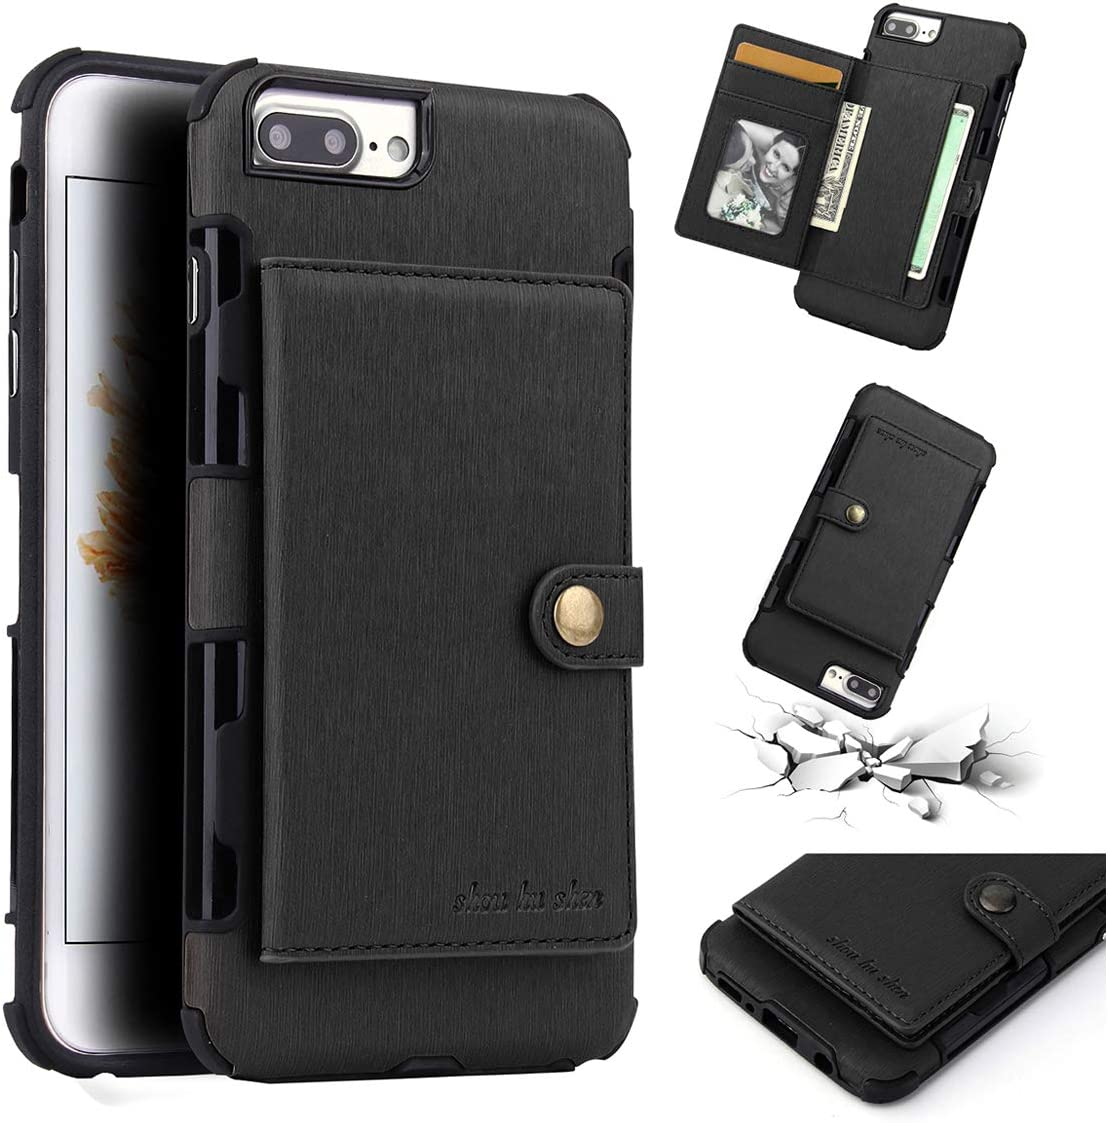 COPAAD iPhone 6 Plus / 6s Plus / 7 Plus / 8 Plus Wallet Case, Credit Card Holder Soft Brushed Texture PU Leather Shockproof Wallet Case for iPhone 6/6s/7/8 Plus, Black